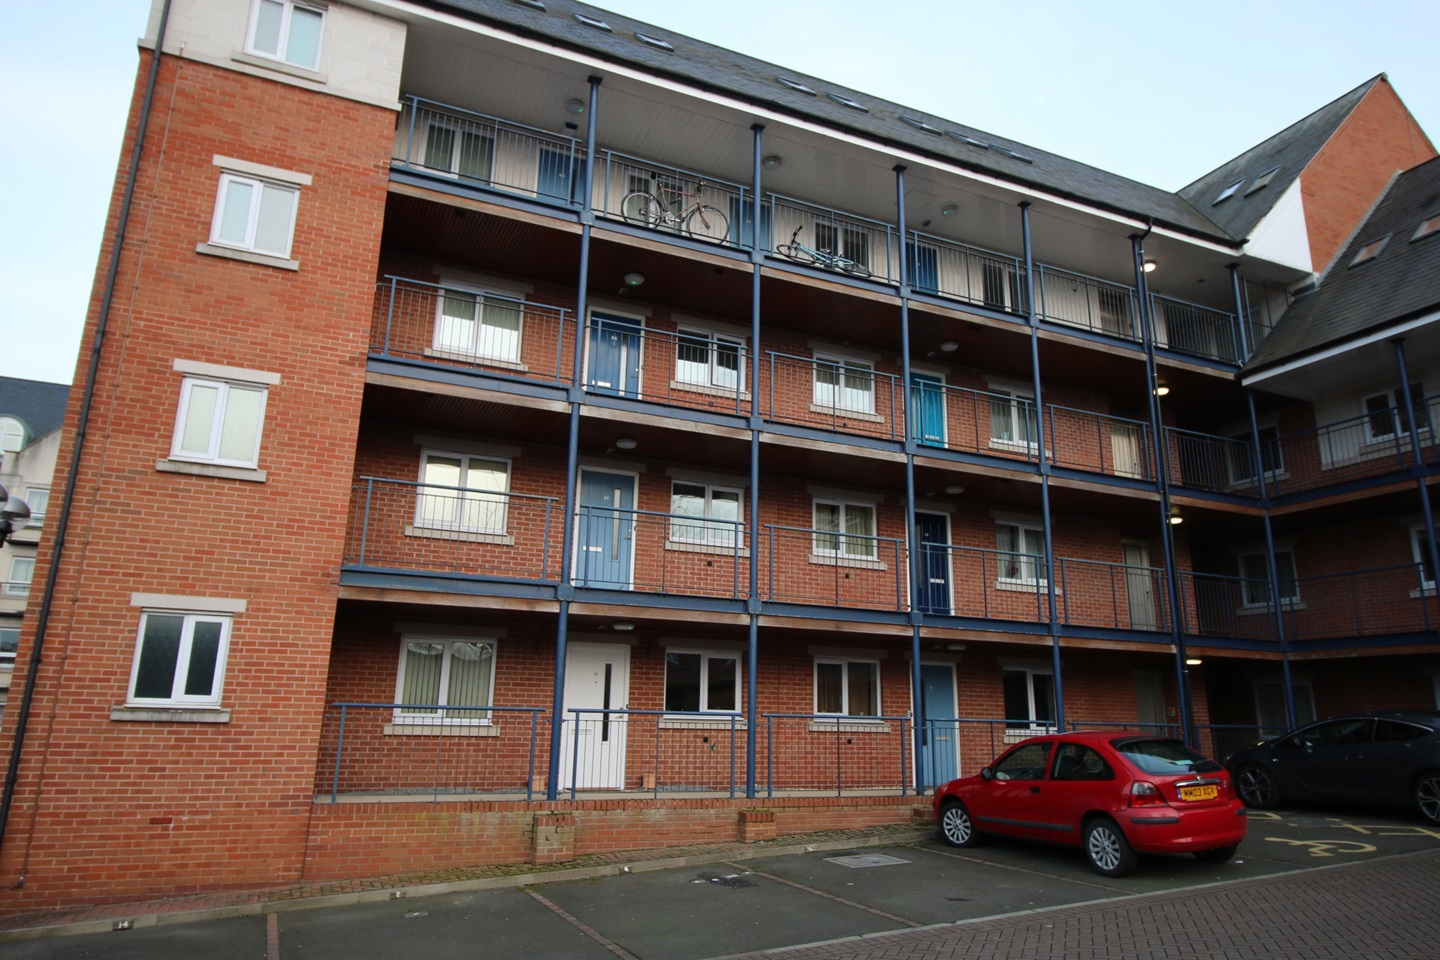 Derby 2 Bed Flat Uttoxeter New Road De22 To Rent Now